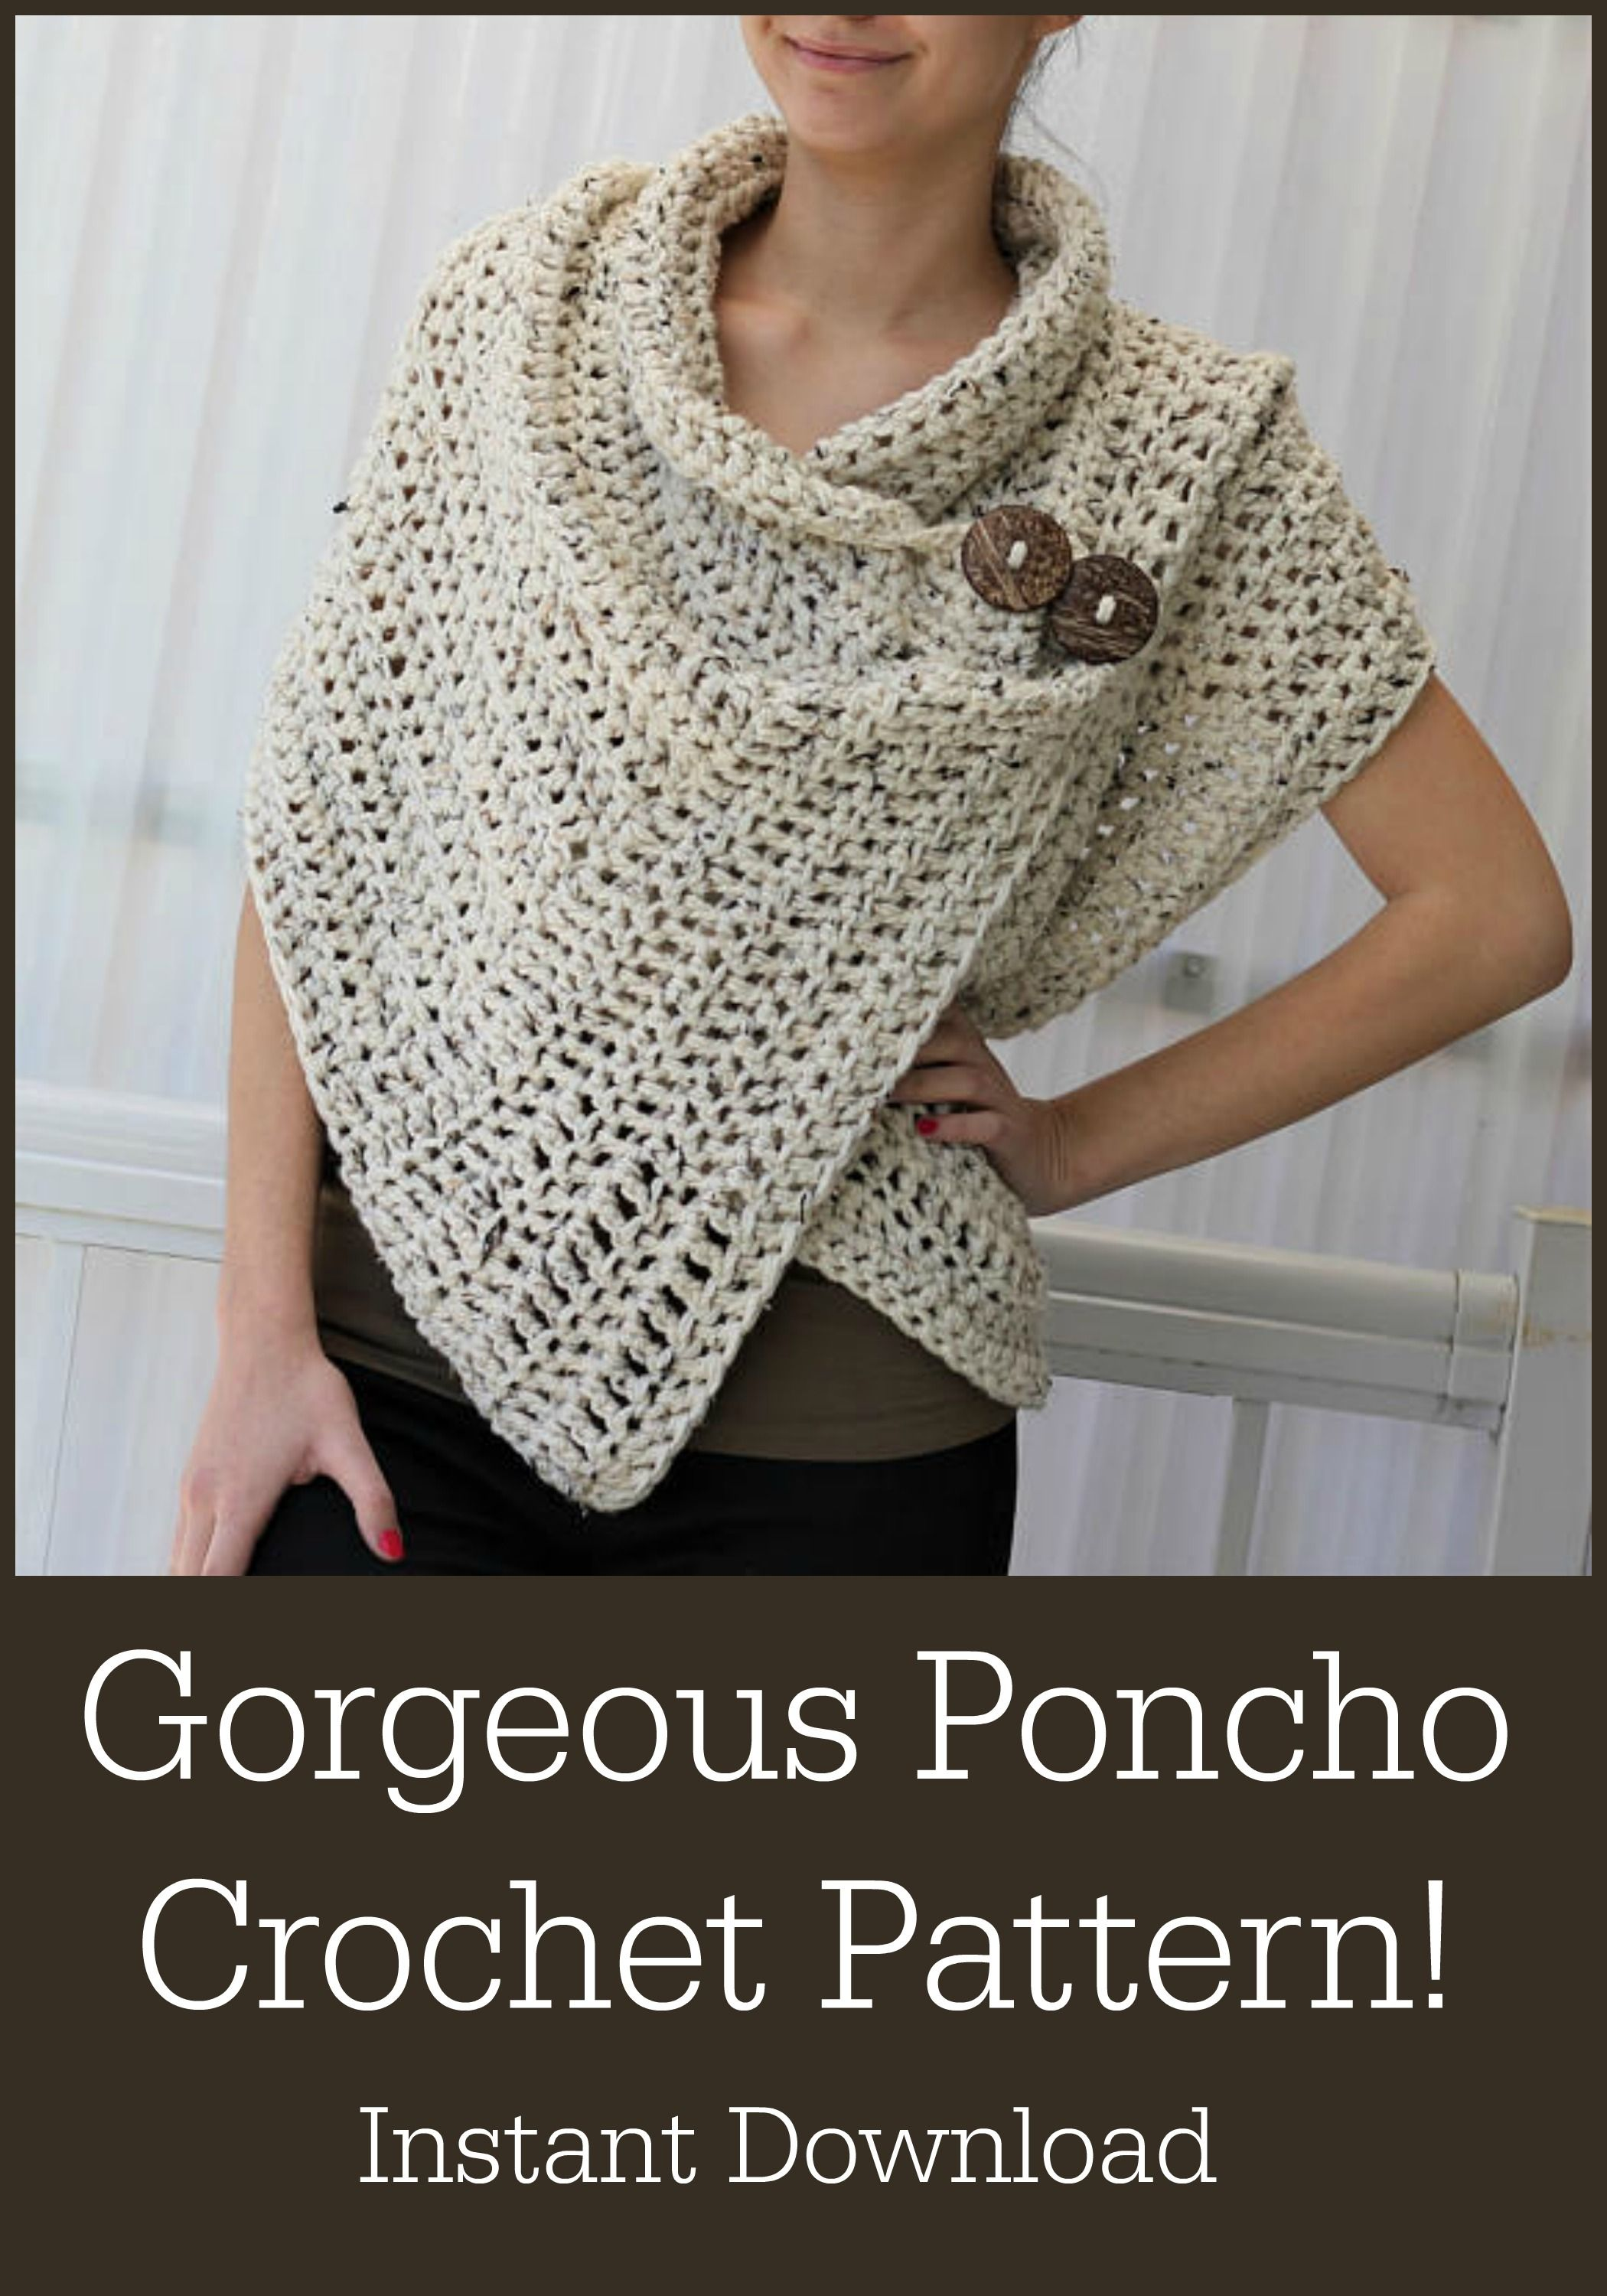 How to make a poncho with your own hands The two easiest options